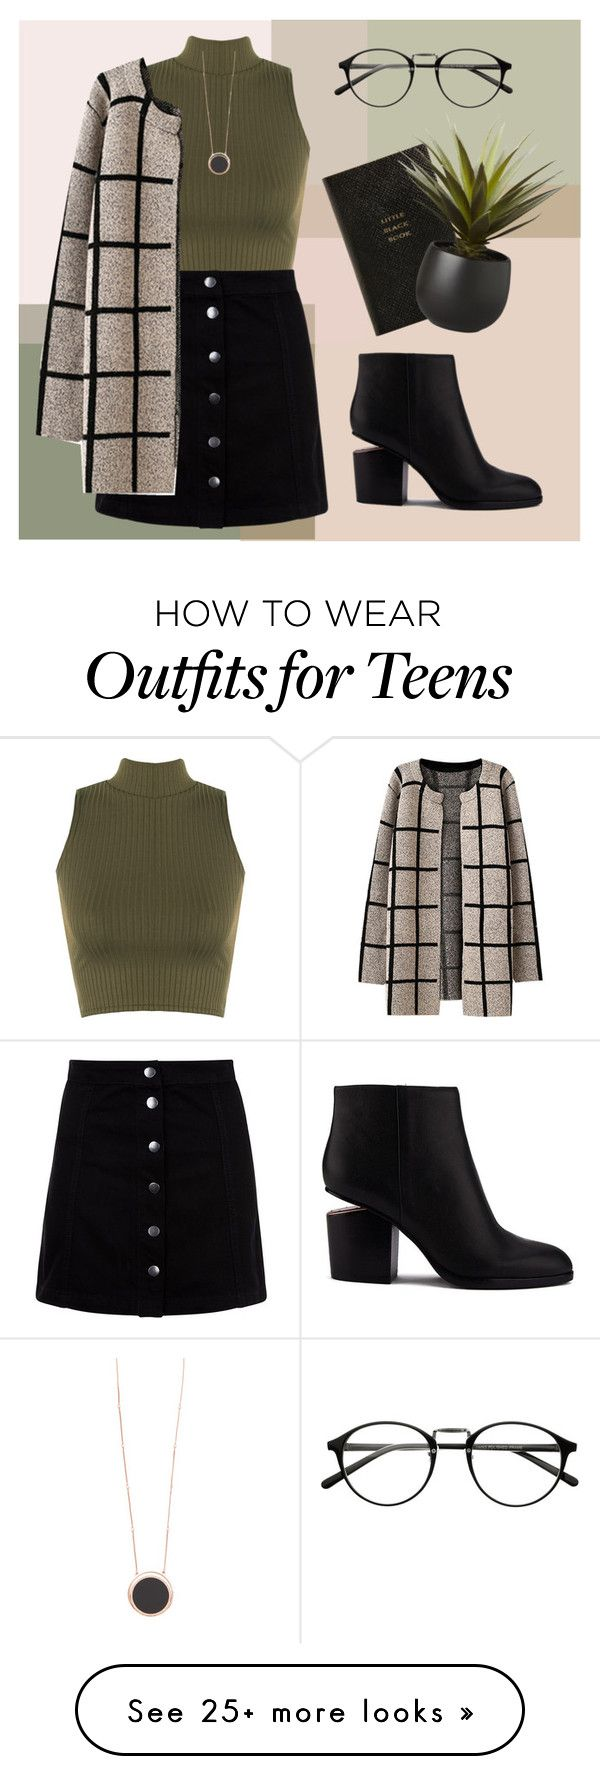 """white teeth teens"" by sam-ashkani on Polyvore featuring мода, WearAll, Chicnova Fashion, Alexander Wang, Kate Spade, Smythson и CB2"